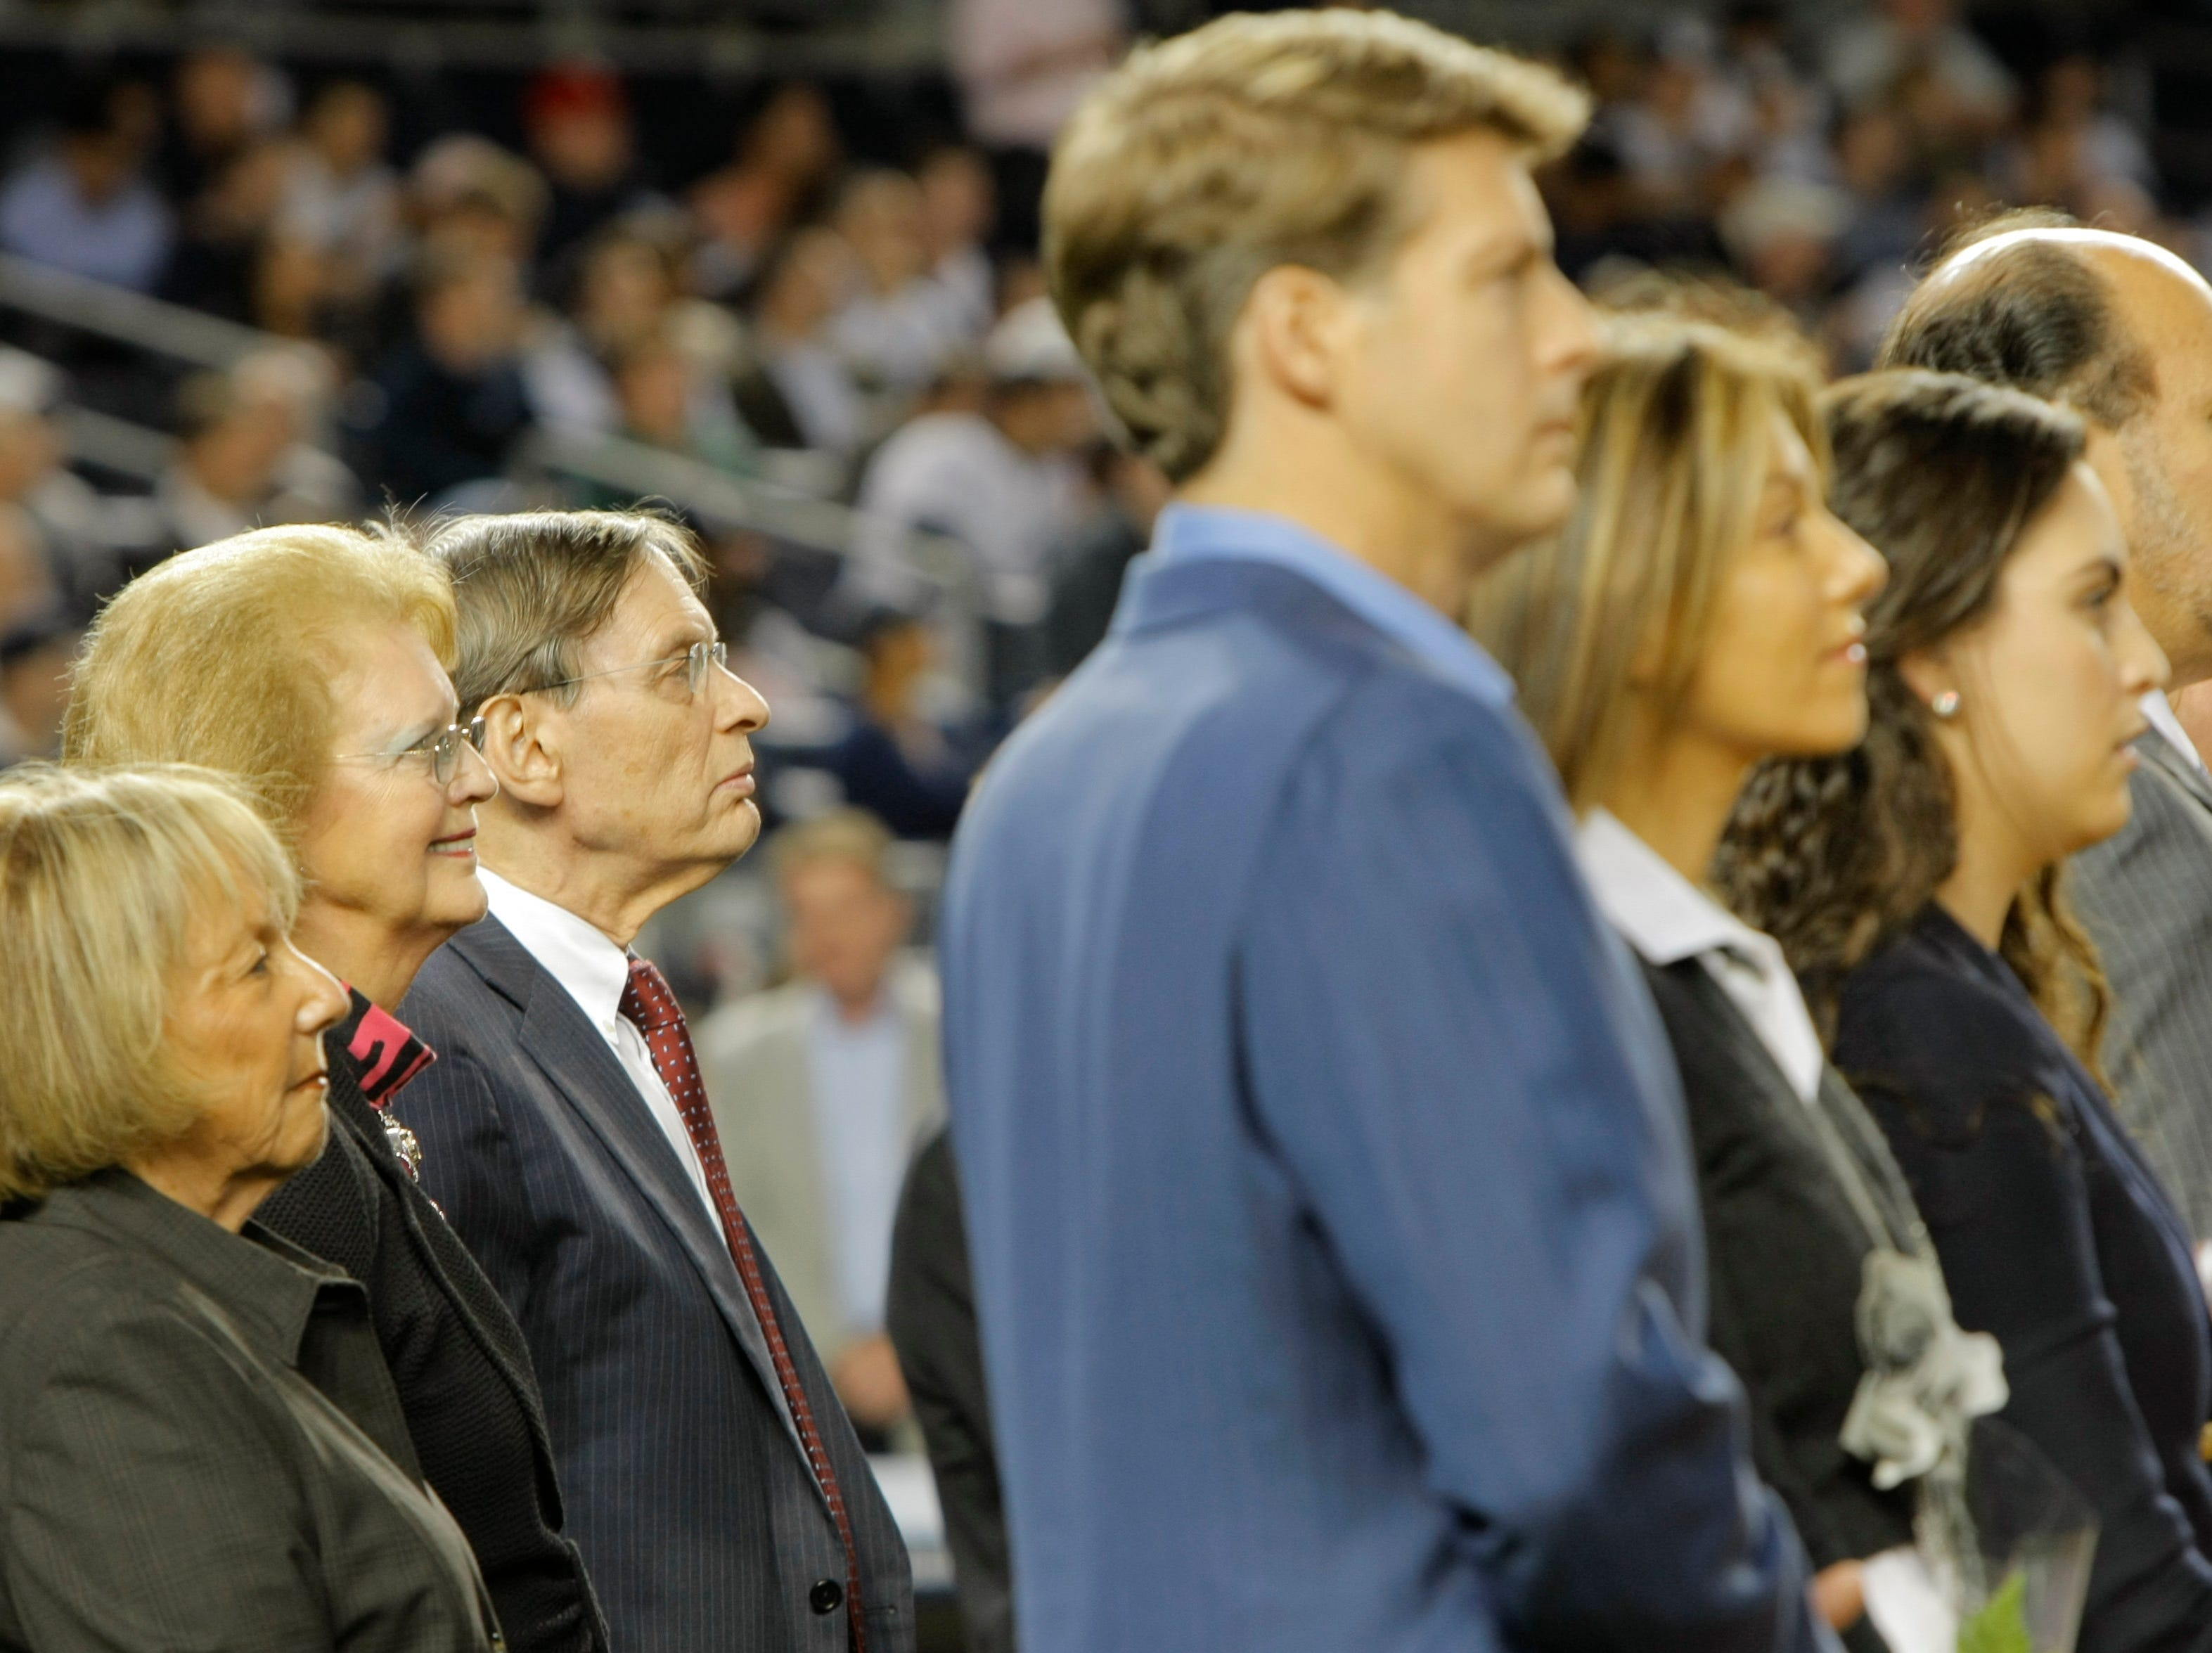 Standing at home plate during a ceremony to honor the Yankees late owner George Steinbrenner are, far left  to right, Sue Selig, wife of baseball commissioner Bud Selig, George's widow Joan Steinbrenner and Bud Selig before the MLB game between the New York Yankees and Tamp Bay Rays at Yankee Stadium. In the foreground in the blue jacket is Hal Steinbrenner one of George's sons and the managing general partner. 9/20/10 Bronx, NY (John Munson/The Star-Ledger)